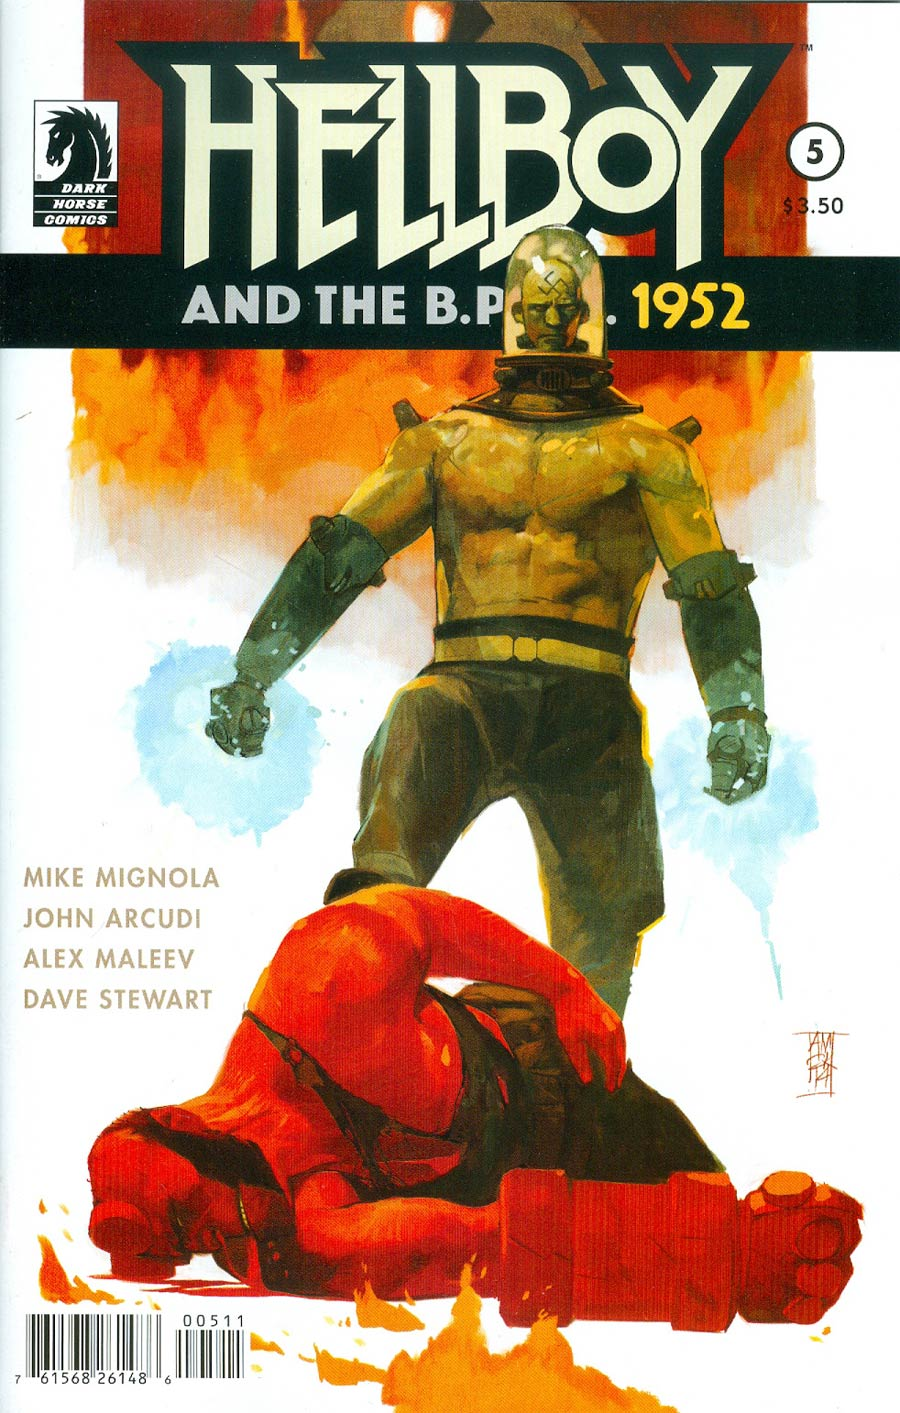 Hellboy And The BPRD 1952 #5